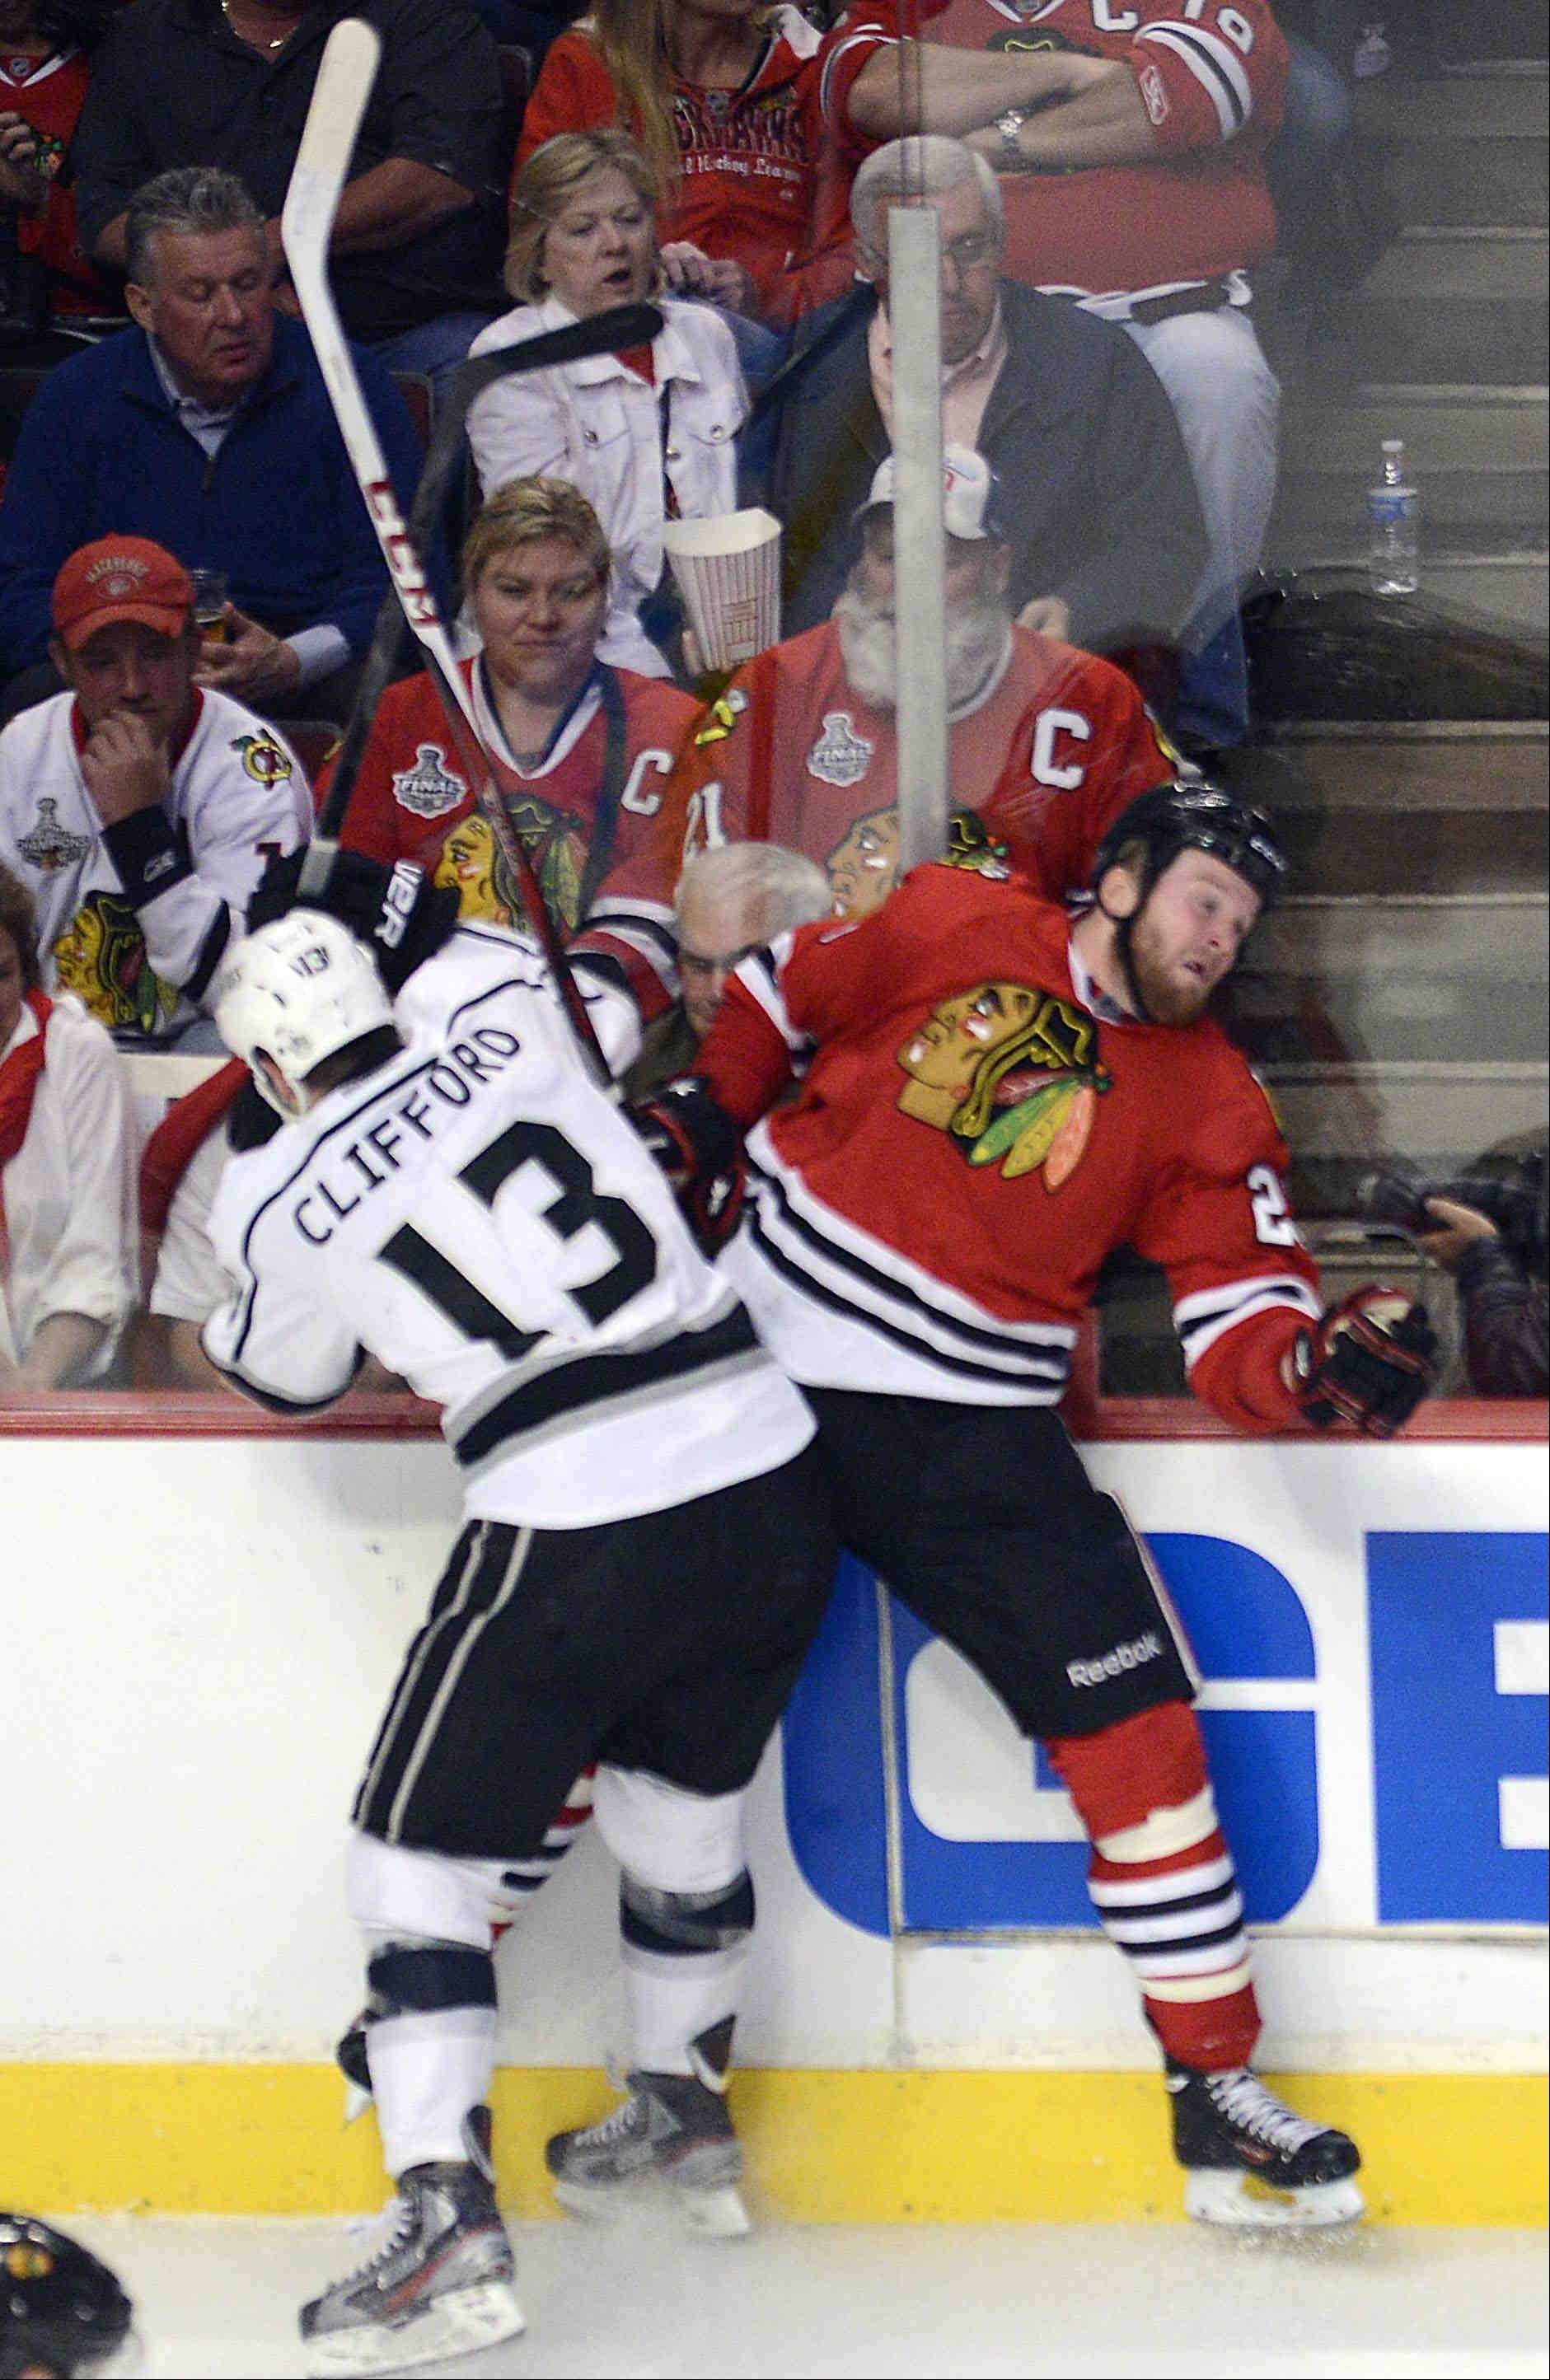 Los Angeles Kings left wing Kyle Clifford checks Chicago Blackhawks left wing Bryan Bickell into the boards in the second period Saturday during the NHL Western Conference Finals Game 5 at the United Center in Chicago.